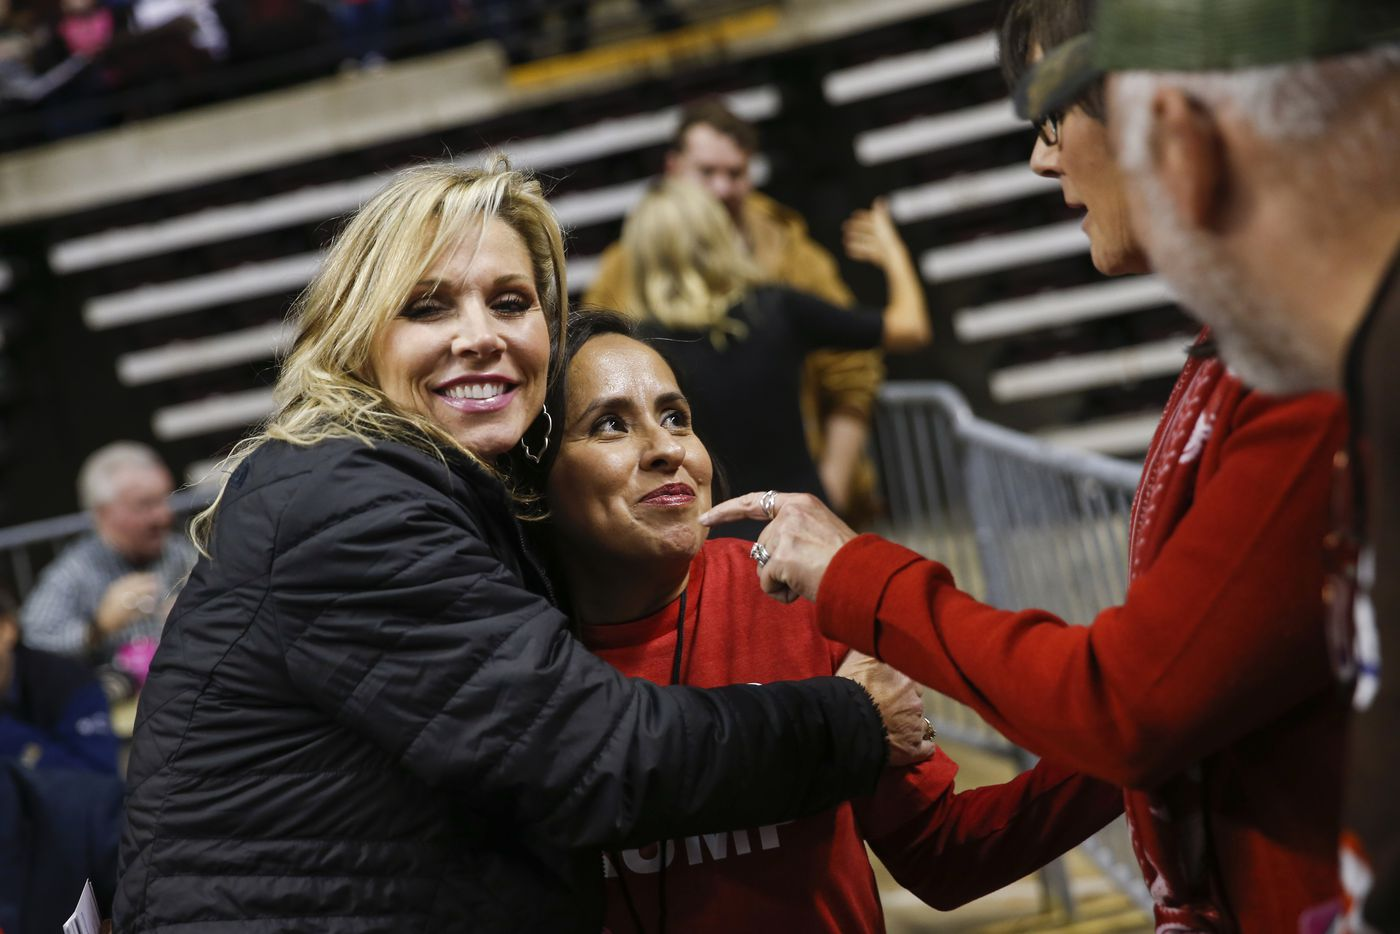 Teri Netterville (left) of KEEL 710 AM radio embraces Martha Doss, who gave an interview to the station during a rally to reelect President Donald Trump in Bossier City, La., on Nov. 14, 2019.